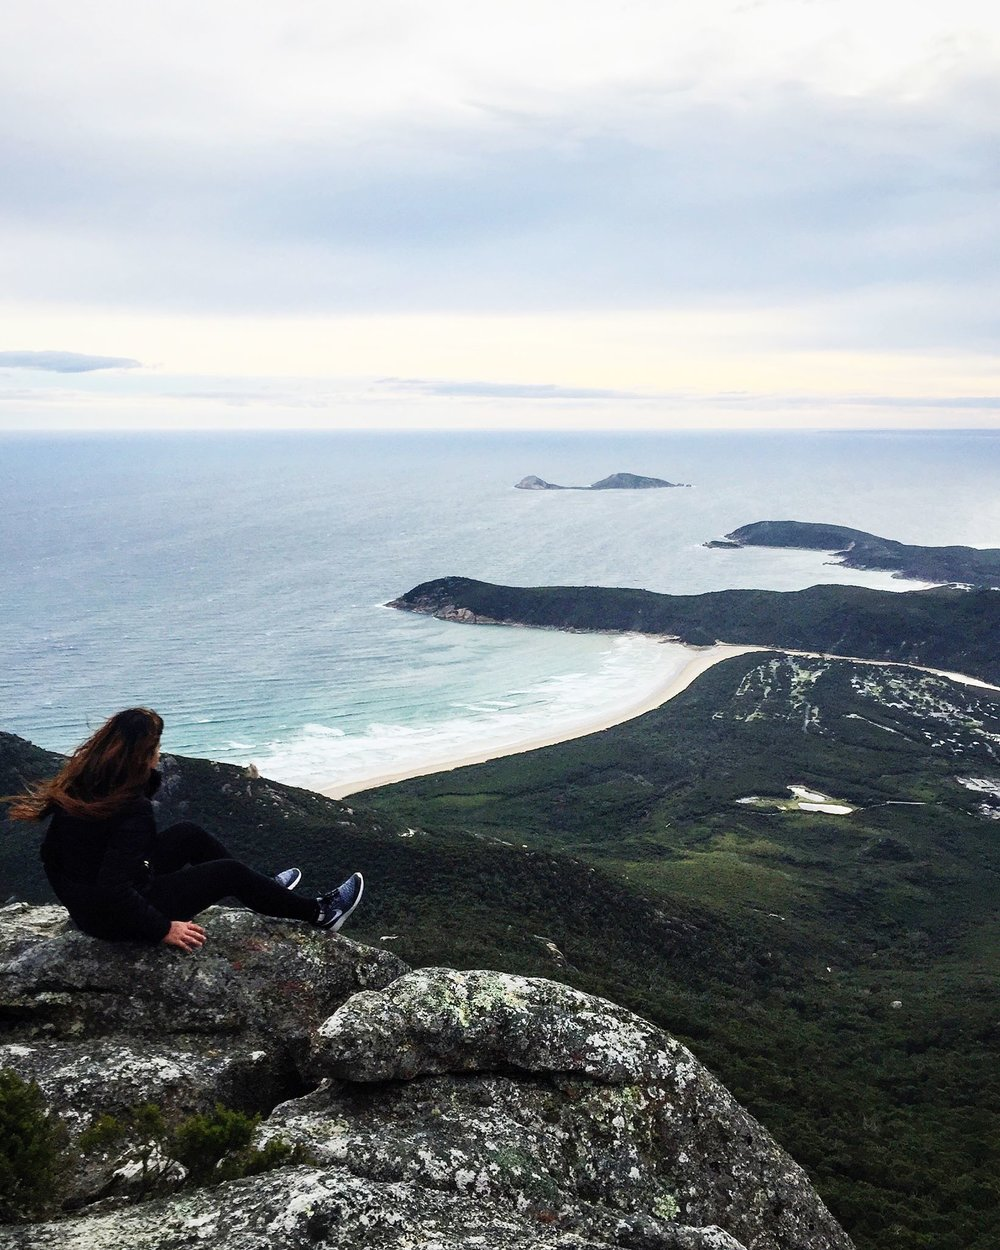 Mount Oberon, Wilsons Promontory National Park